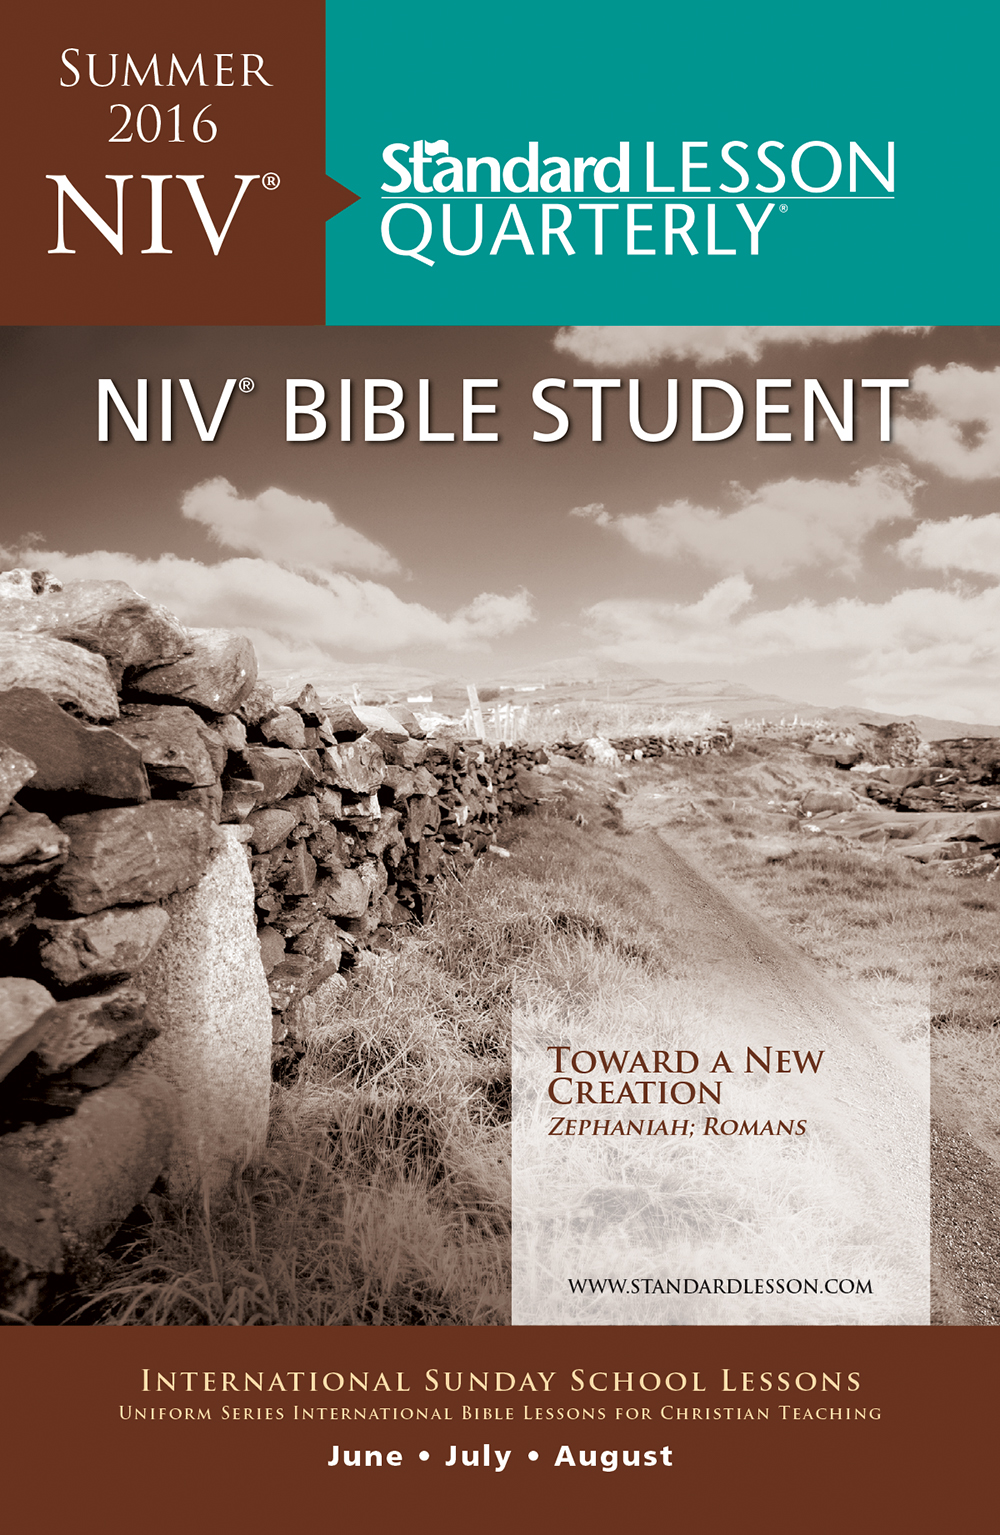 9. Learning and Teaching Stewardship | Bible.org